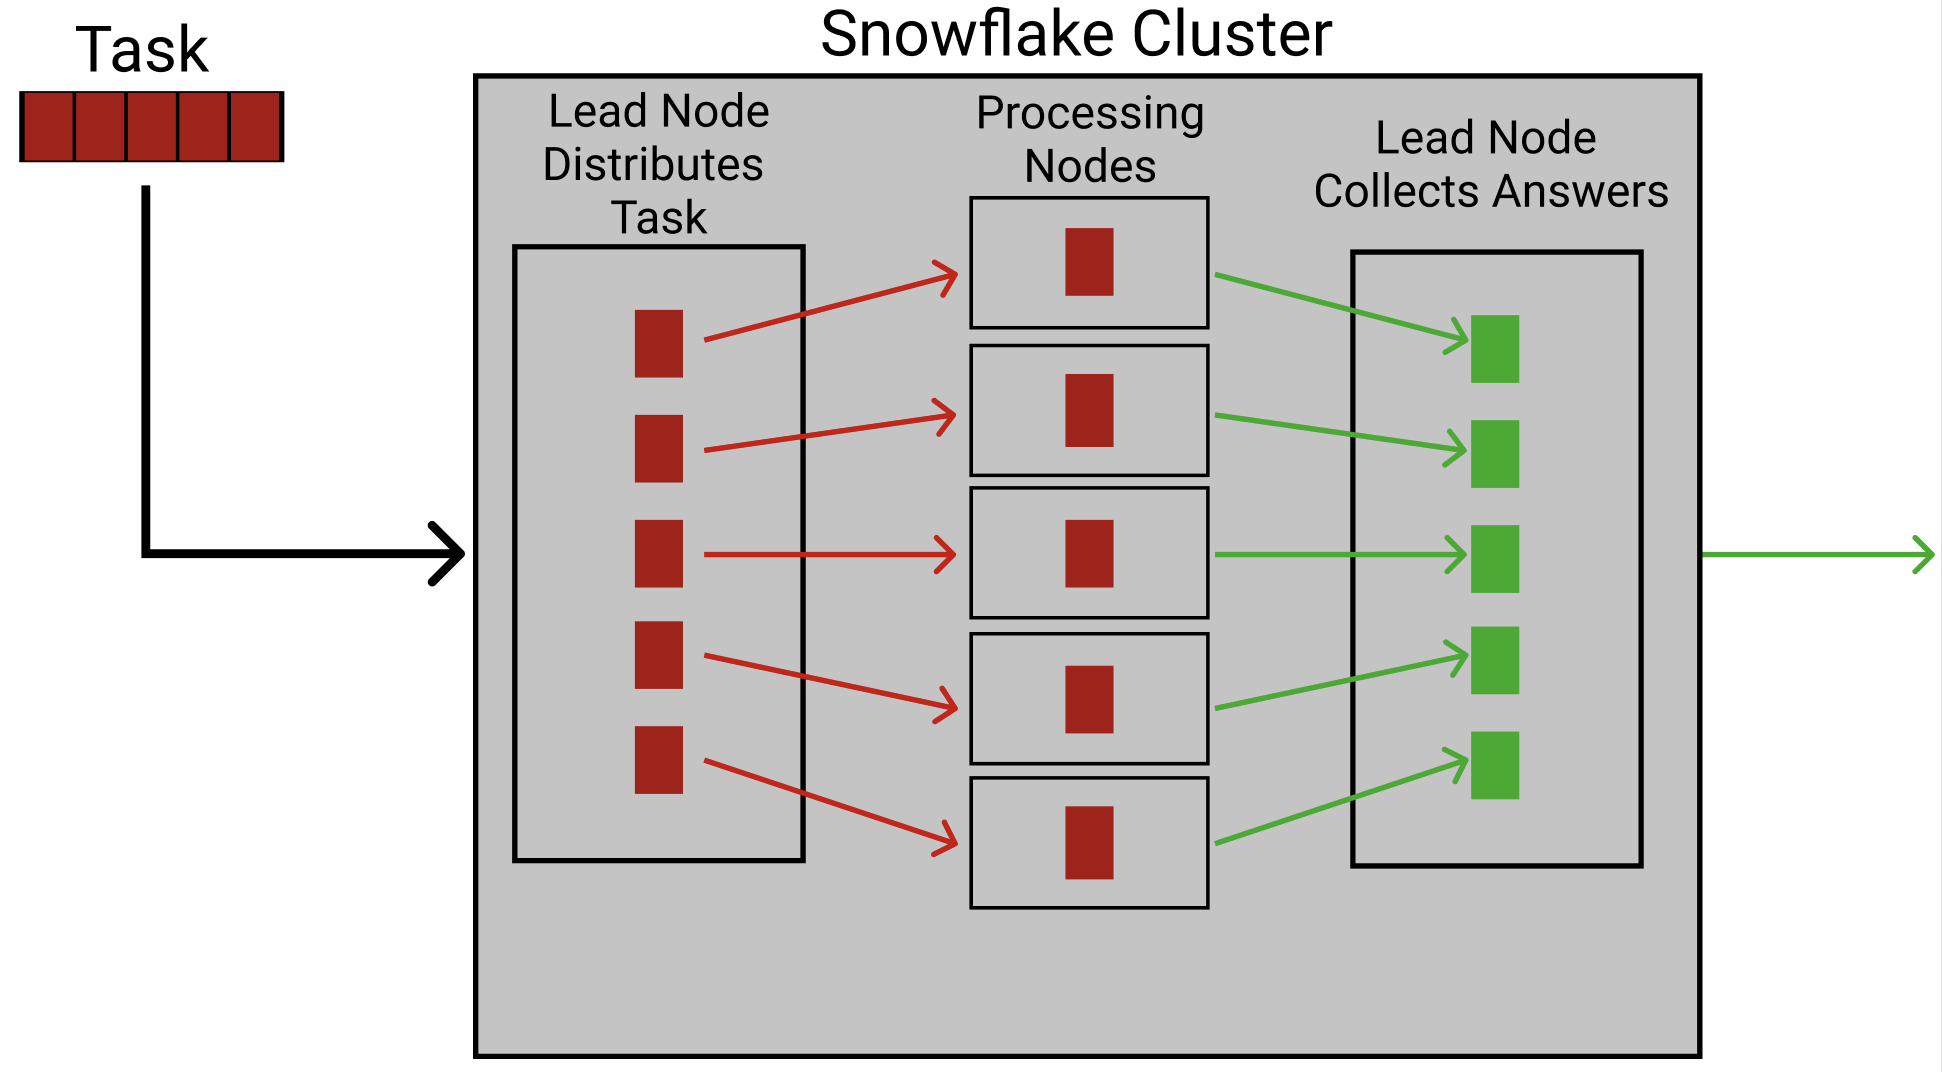 This image shows how a task is divided between processing nodes and reassembled